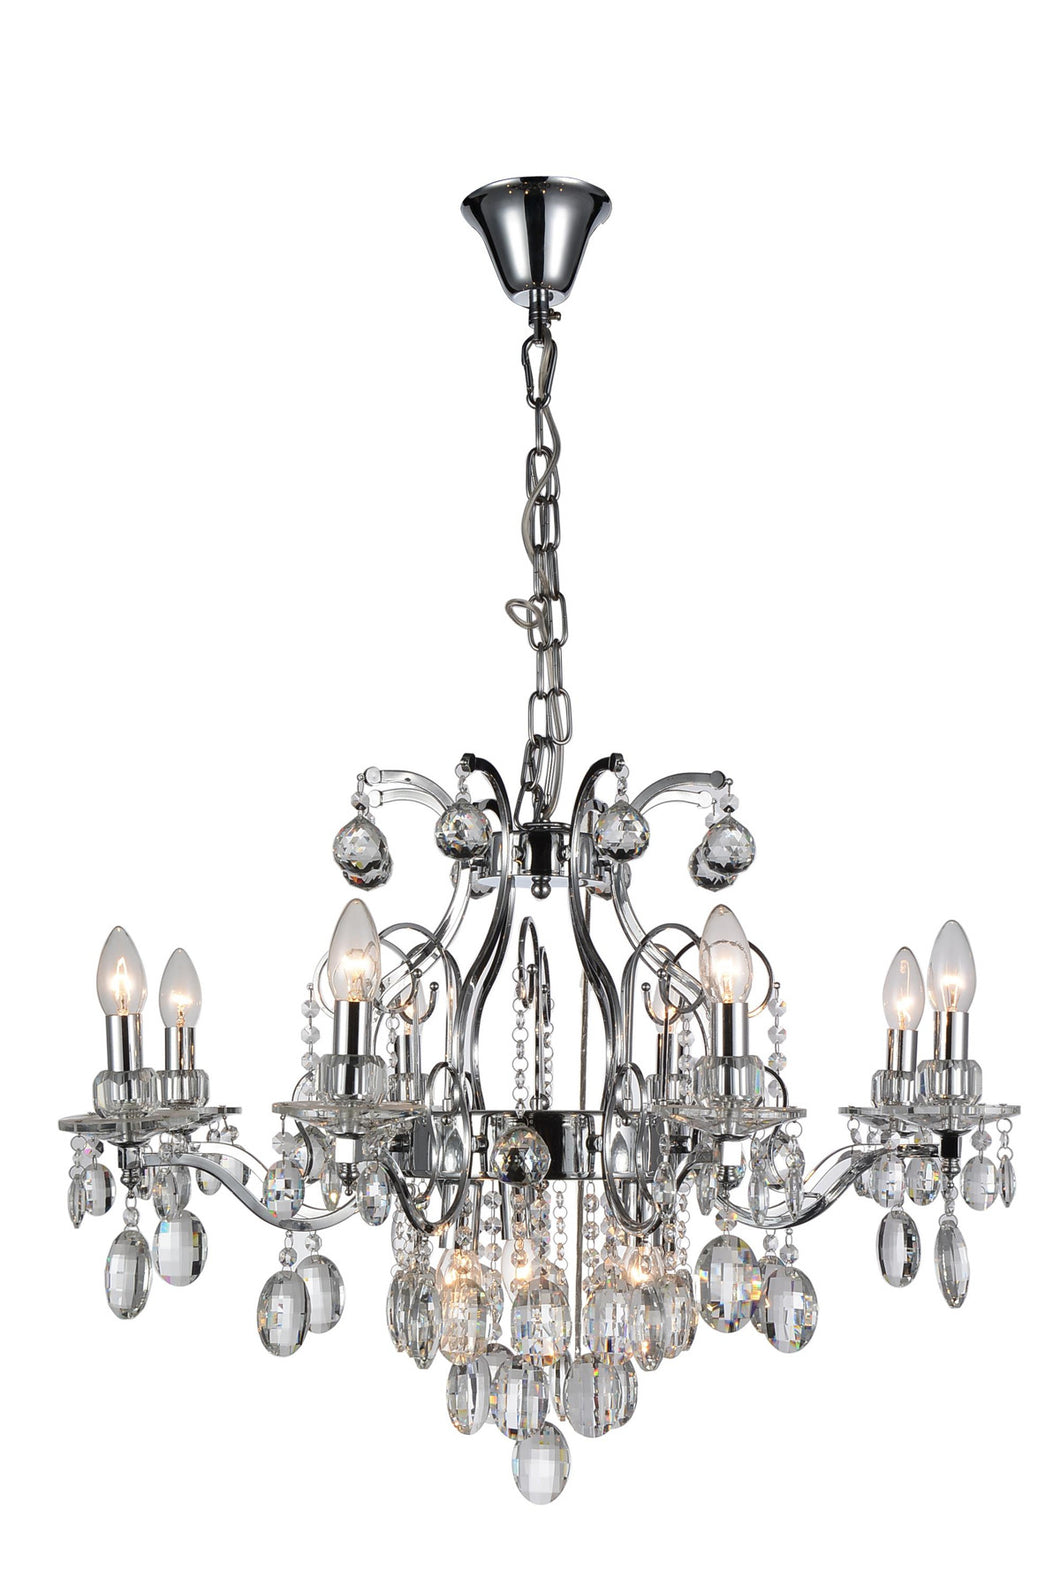 11 Light Up Chandelier with Chrome finish